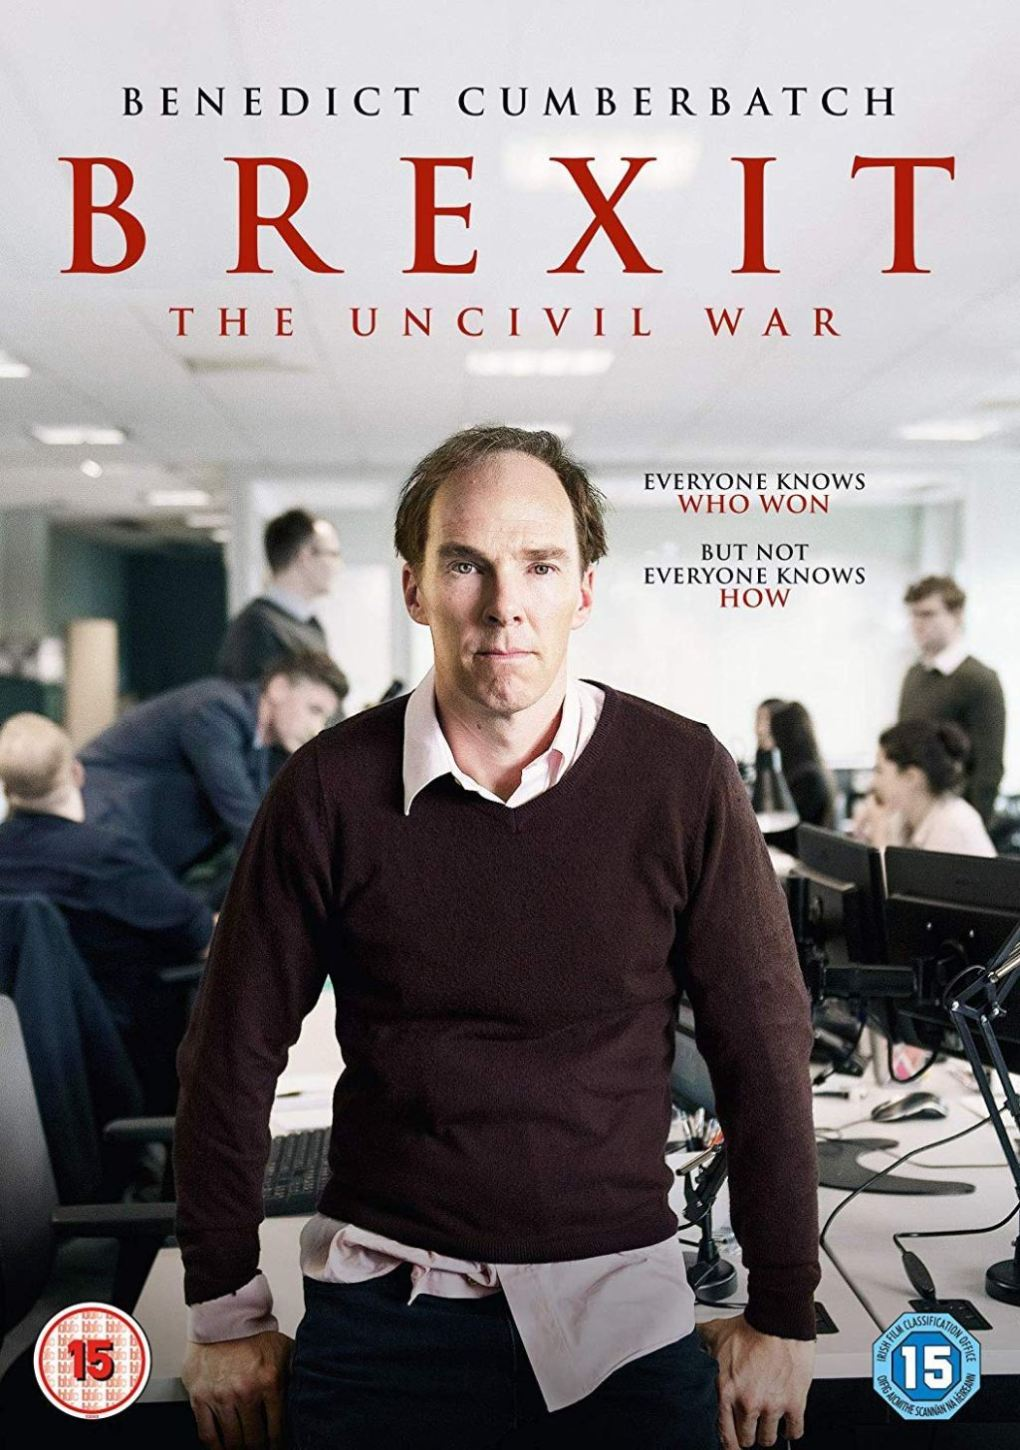 brexit film poster cumberbatch uncivilian war uncivil white supremacy ... Dominic Cummings #PUTIN johnson neoliberalism=capitalism